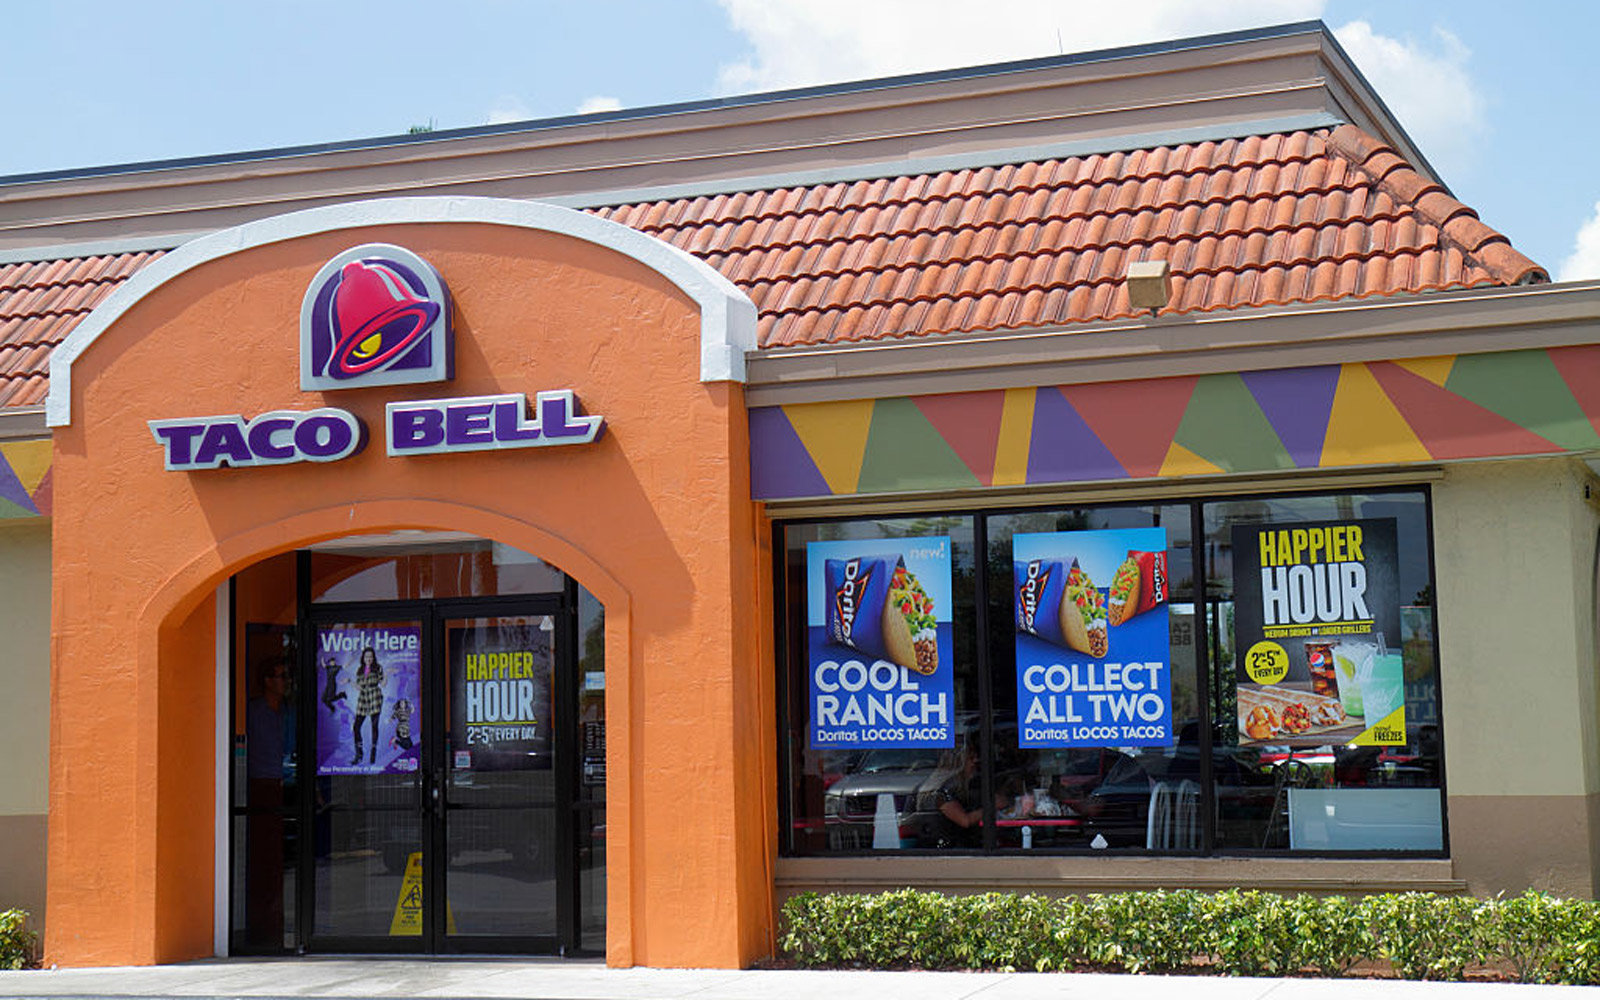 Taco Bell entrance at Homestead.